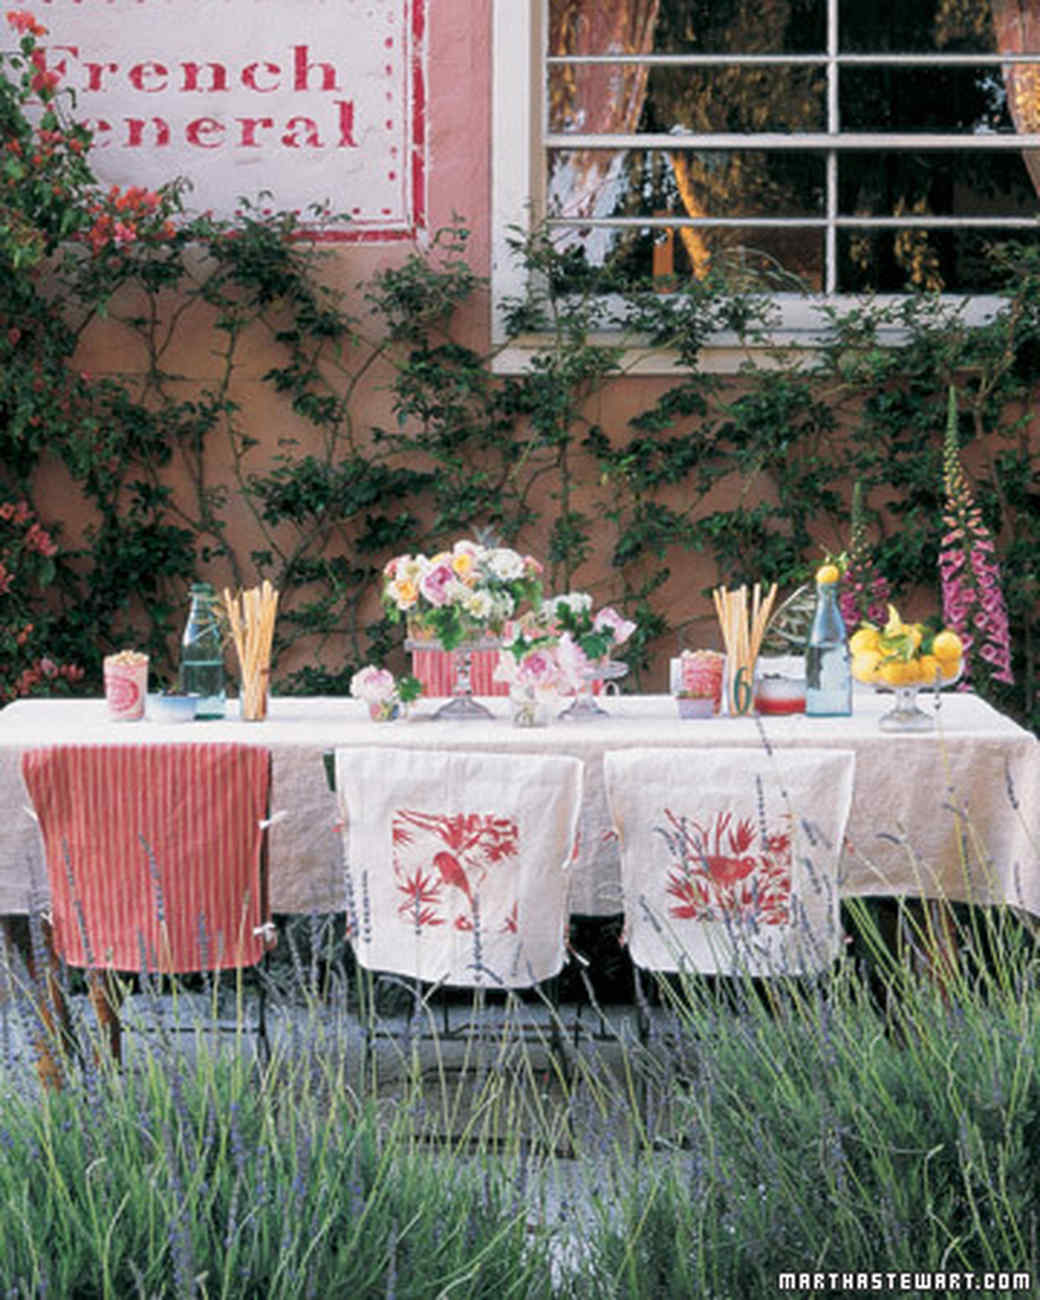 French Inspired Ideas Martha Stewart & Garden Party Ideas Martha Stewart - Best Idea Garden